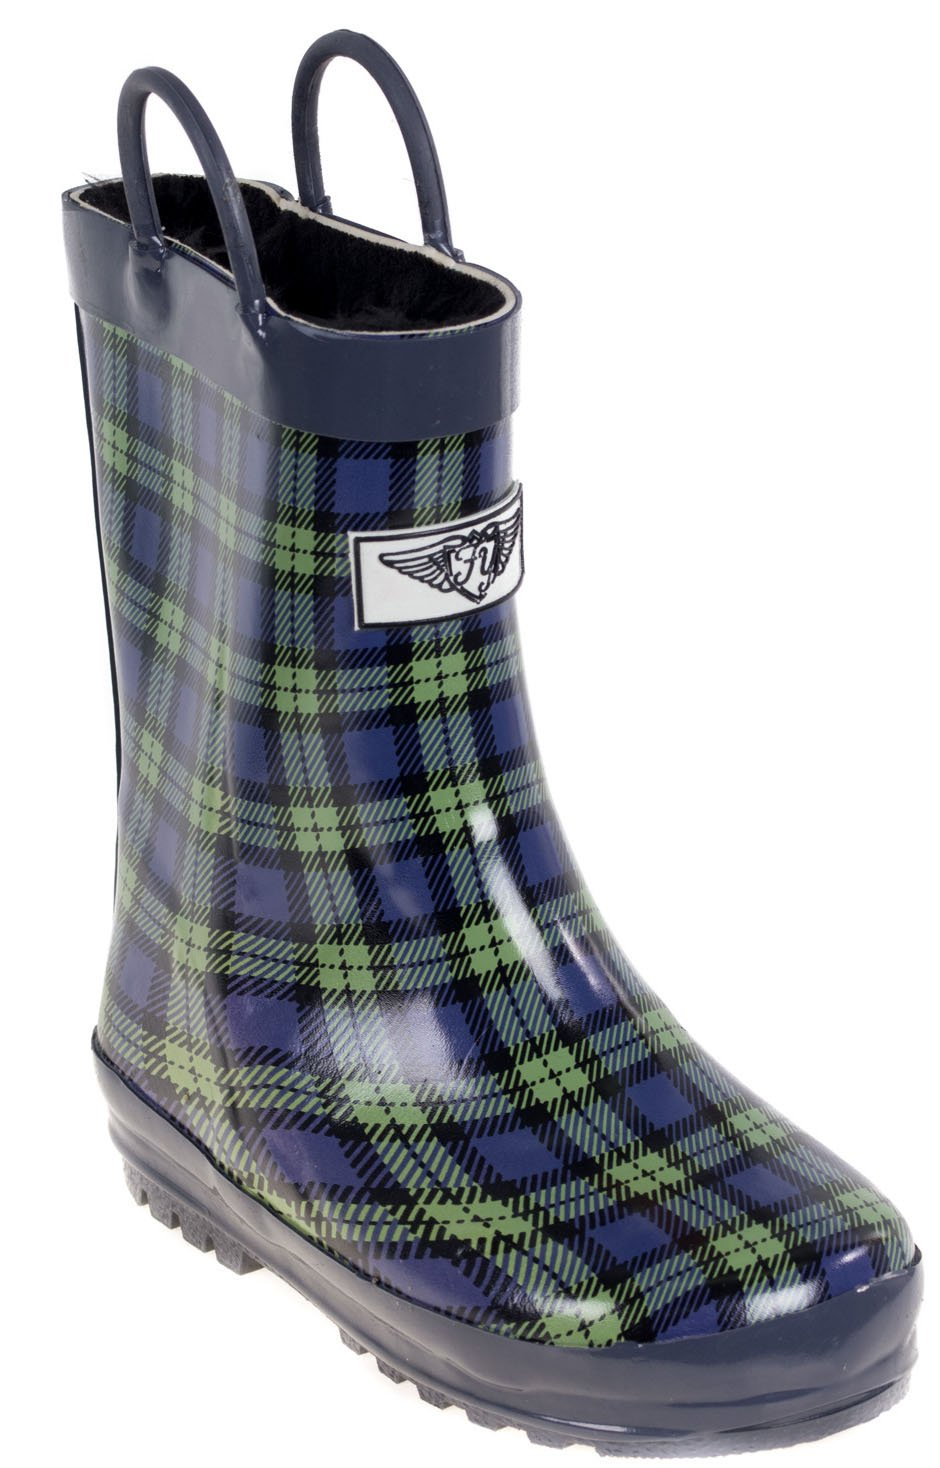 Kids Rain Boots, Faux Fur Lined Rubber Boots with Handles, Blue Green Plaid Size 13